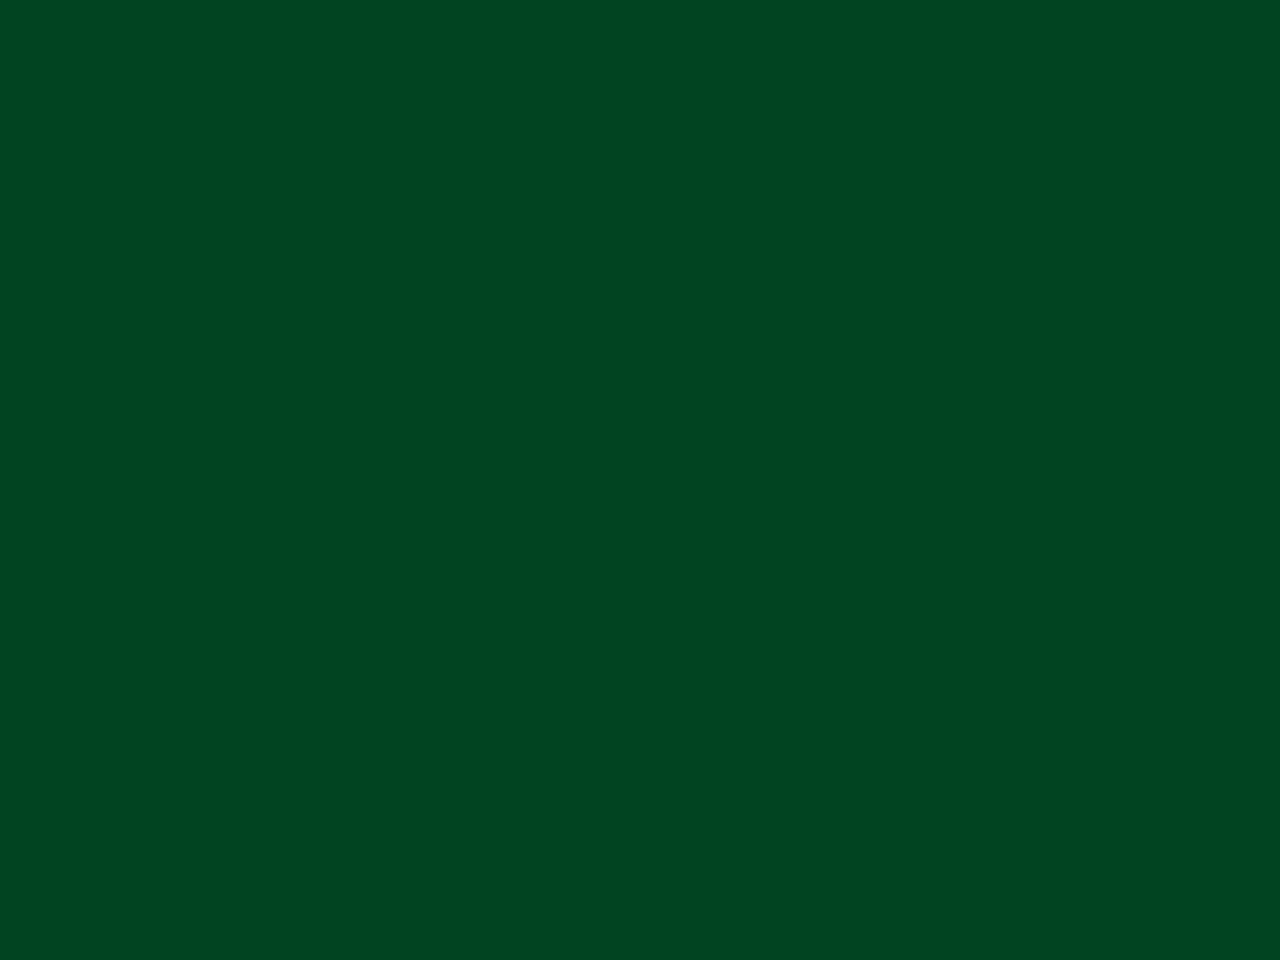 1280x960 UP Forest Green Solid Color Background